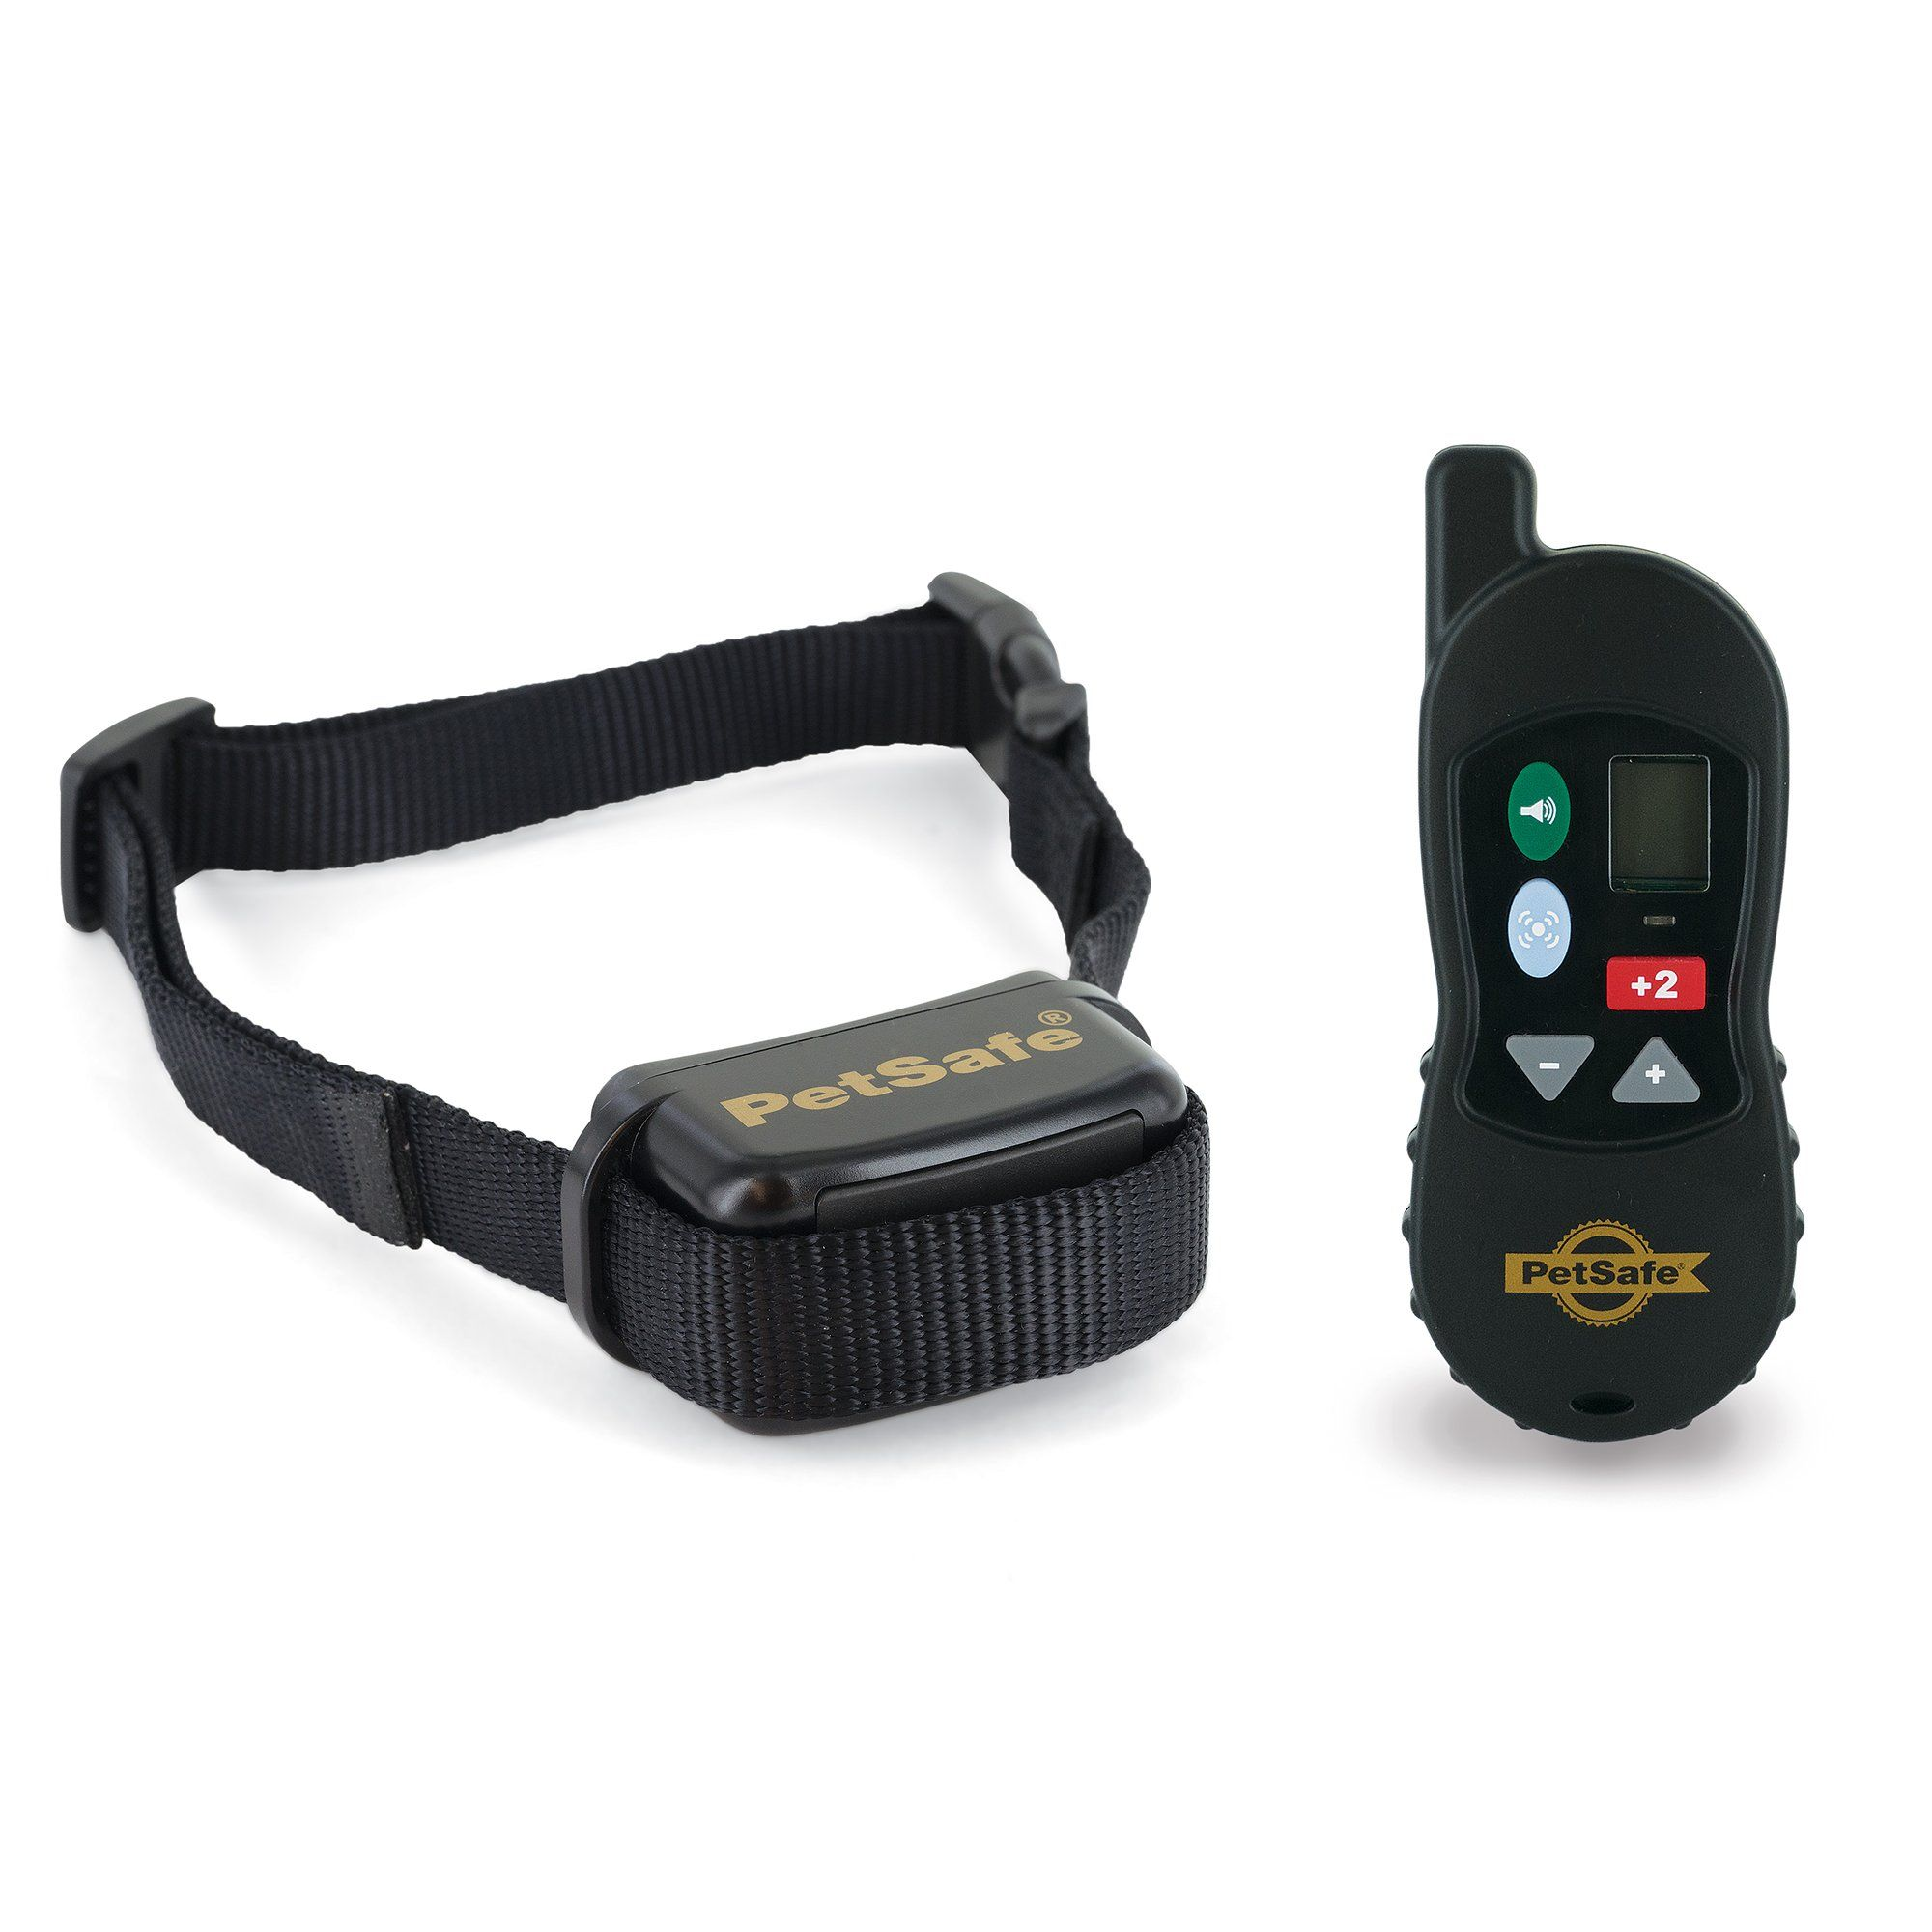 Petsafe Vibration Dog Trainer Collar With Remote 8 5 Lb